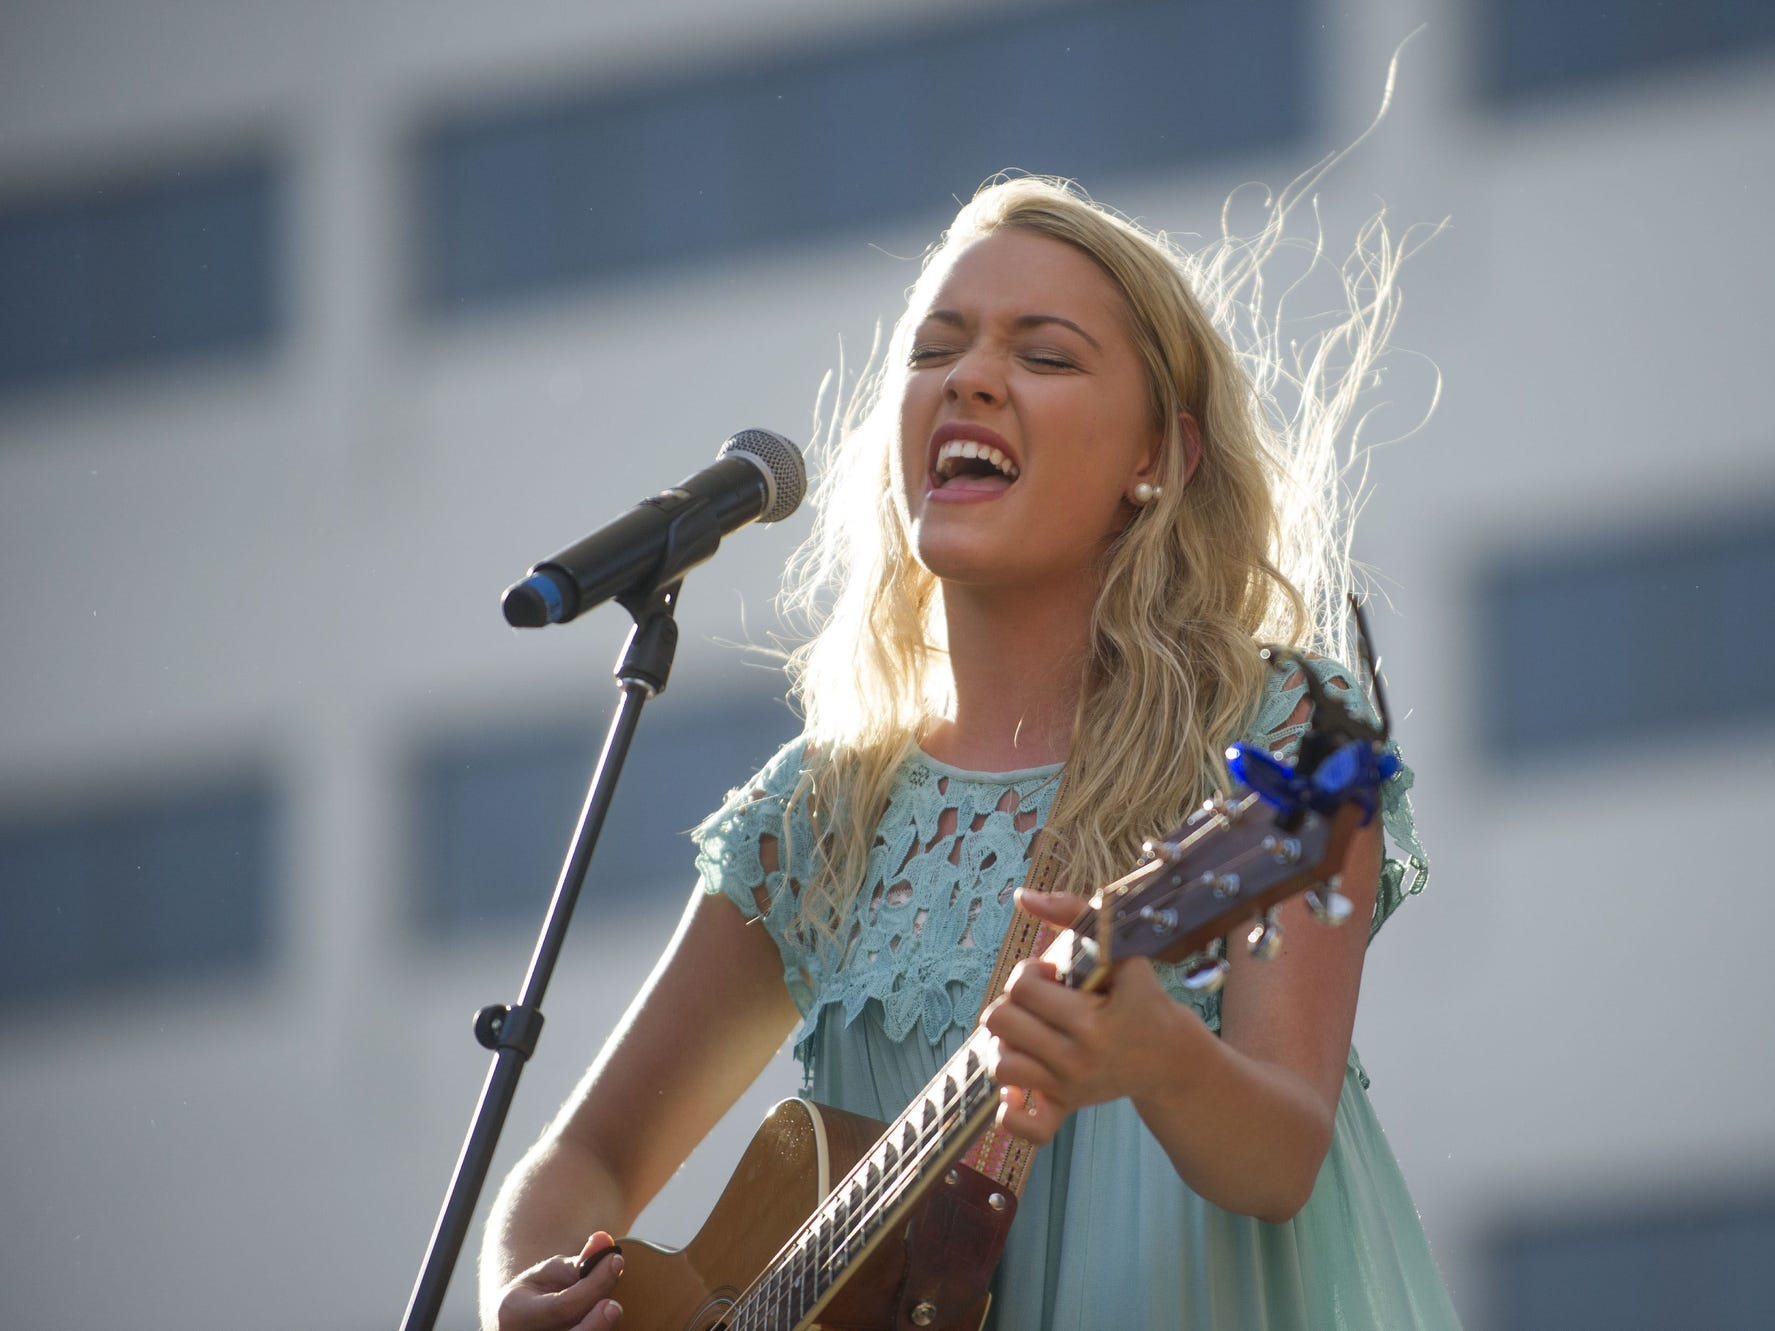 NOV. 24